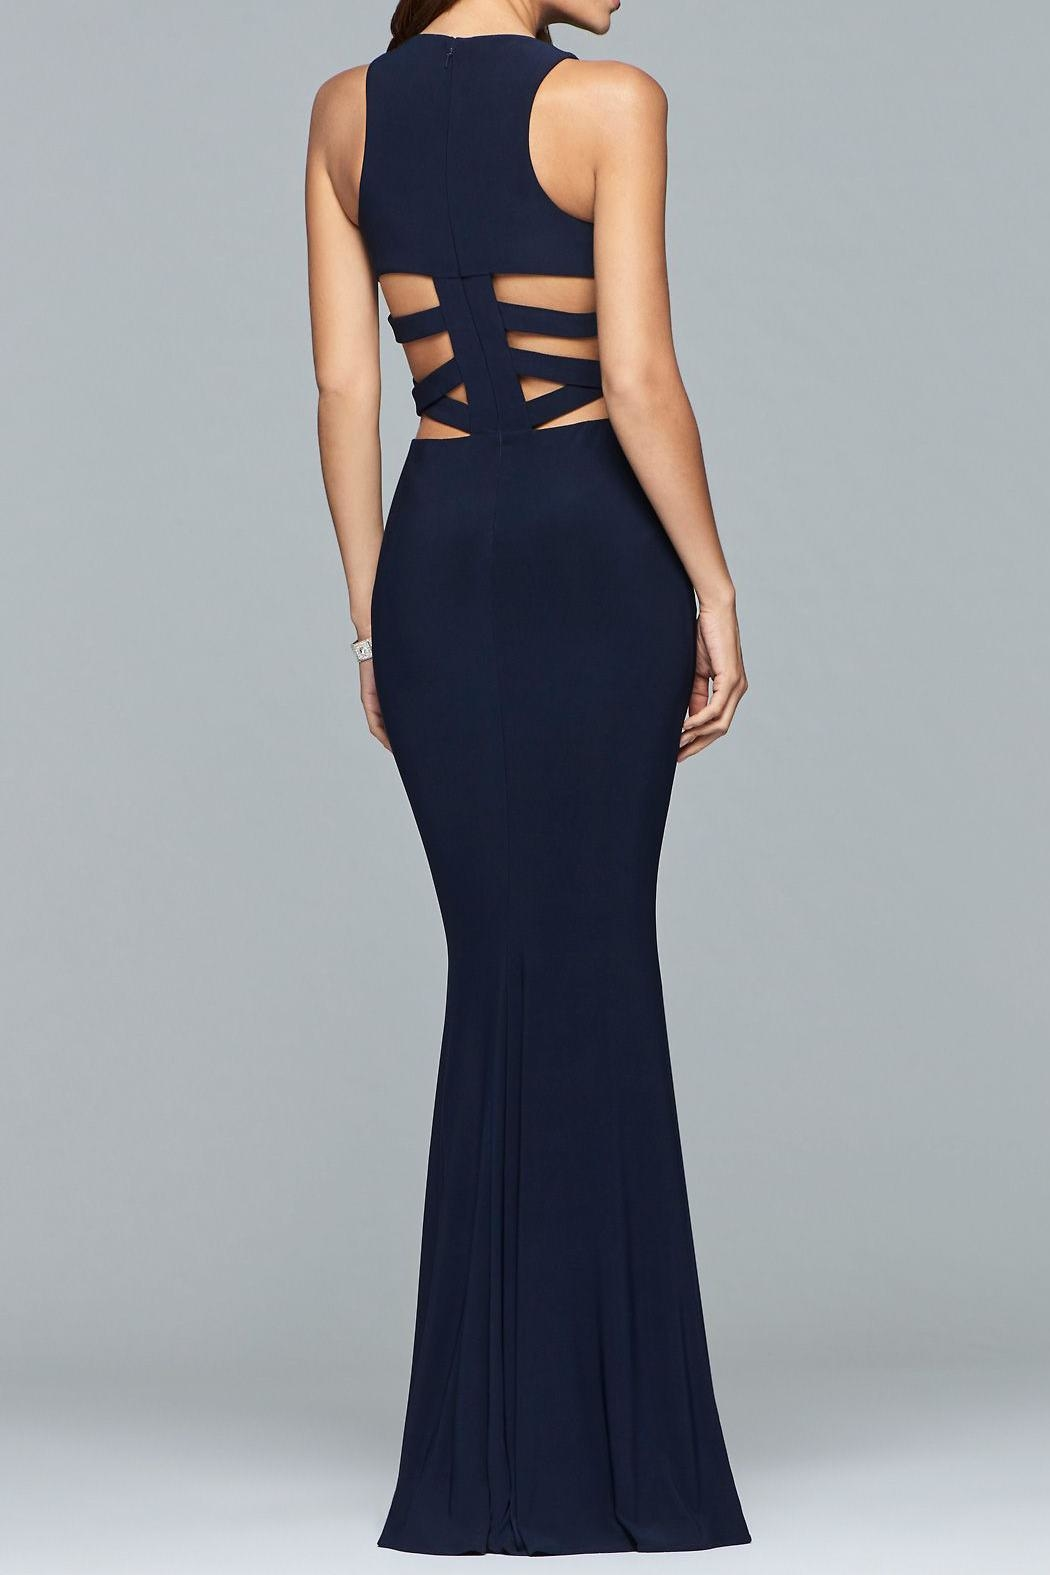 Faviana Alluring Cut-Out Dress - Front Full Image